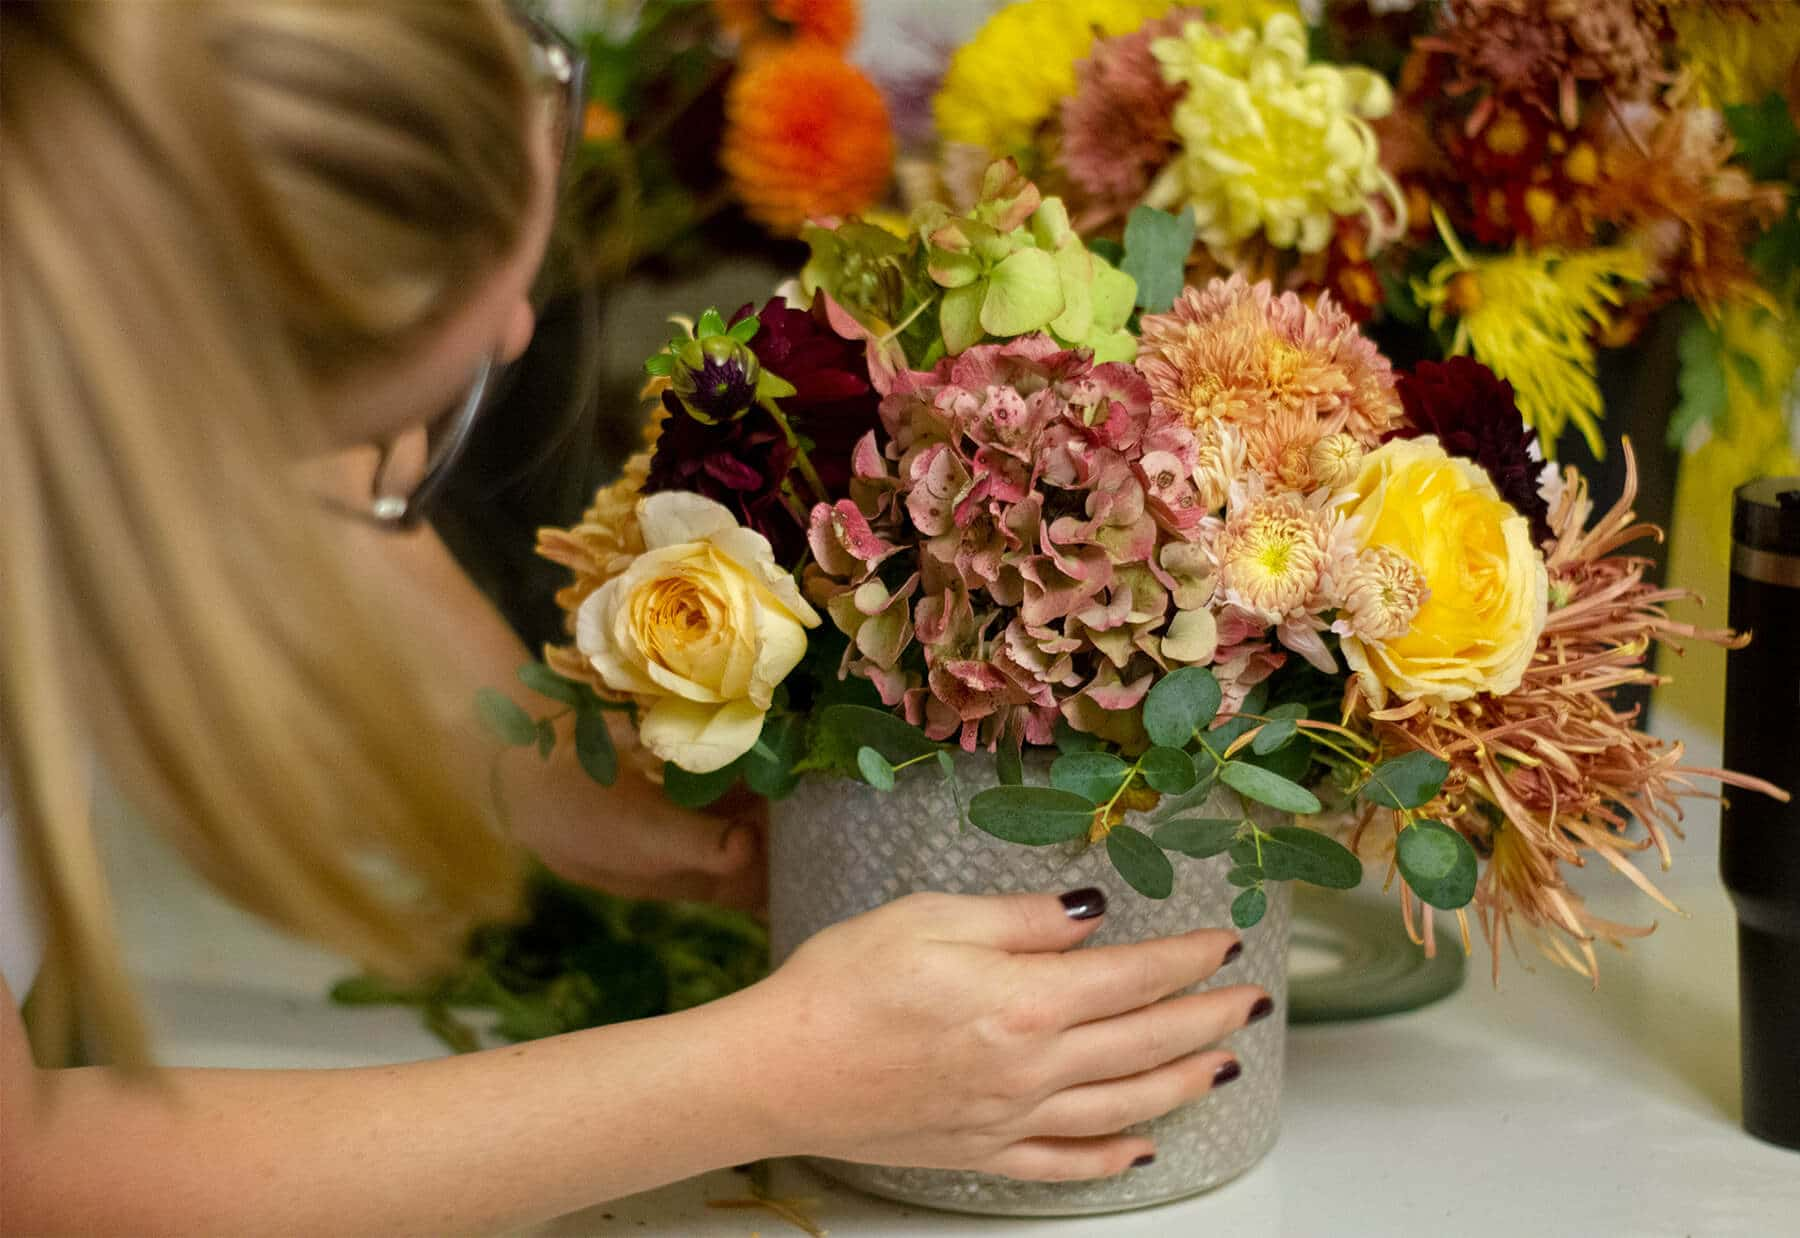 Amanda Kitaura of Bloom arranging flowers in a fall centerpiece.